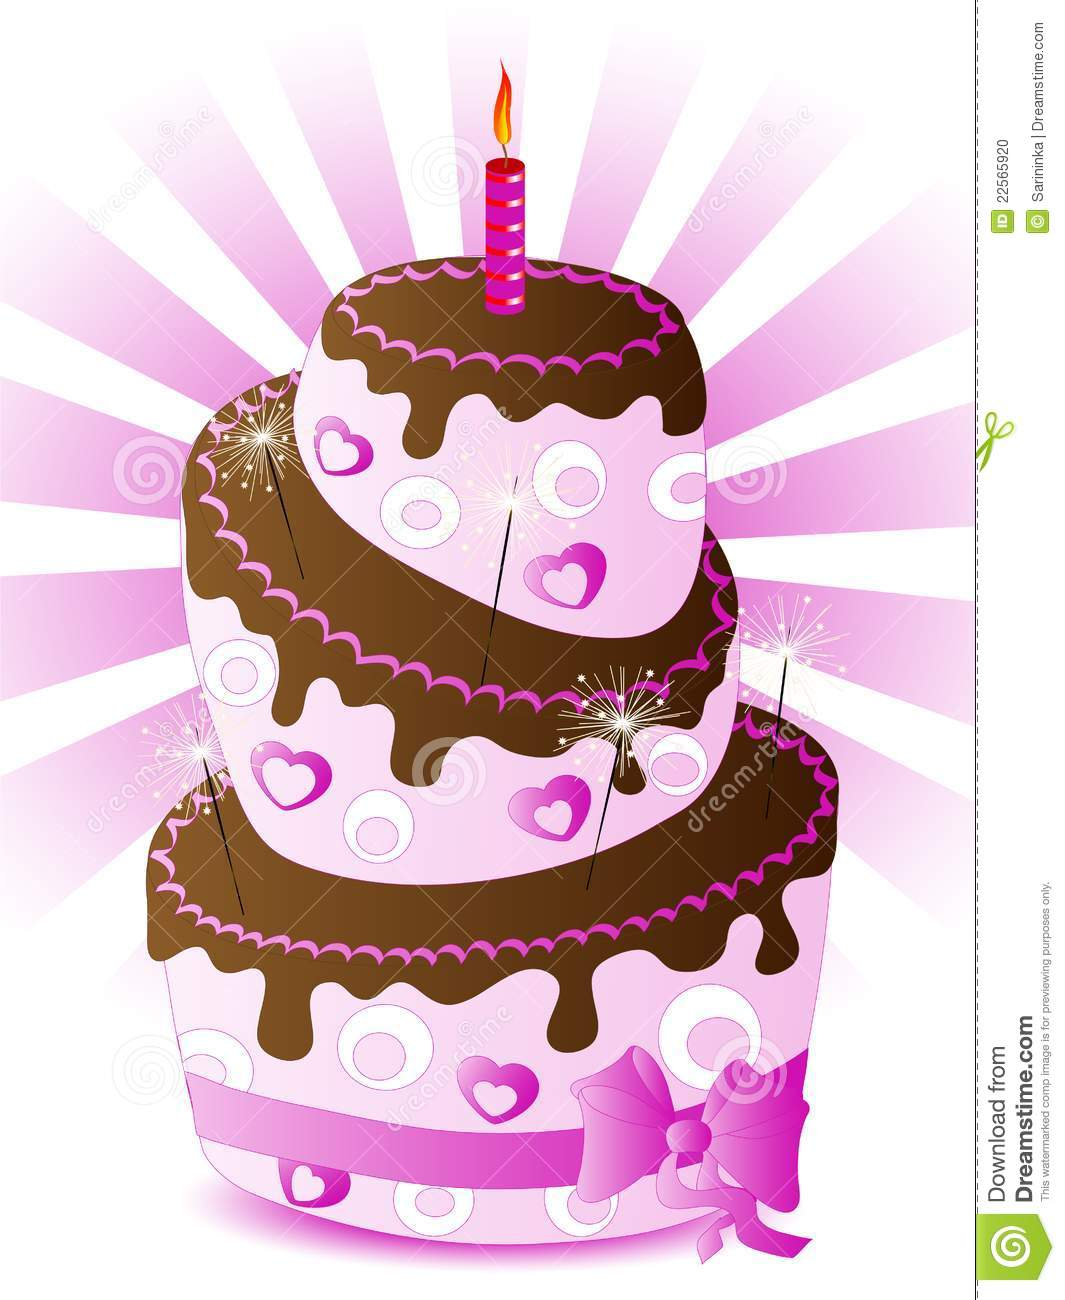 Cake Design For Monthsary : Her Birthday Cake Stock Photo - Image: 22565920